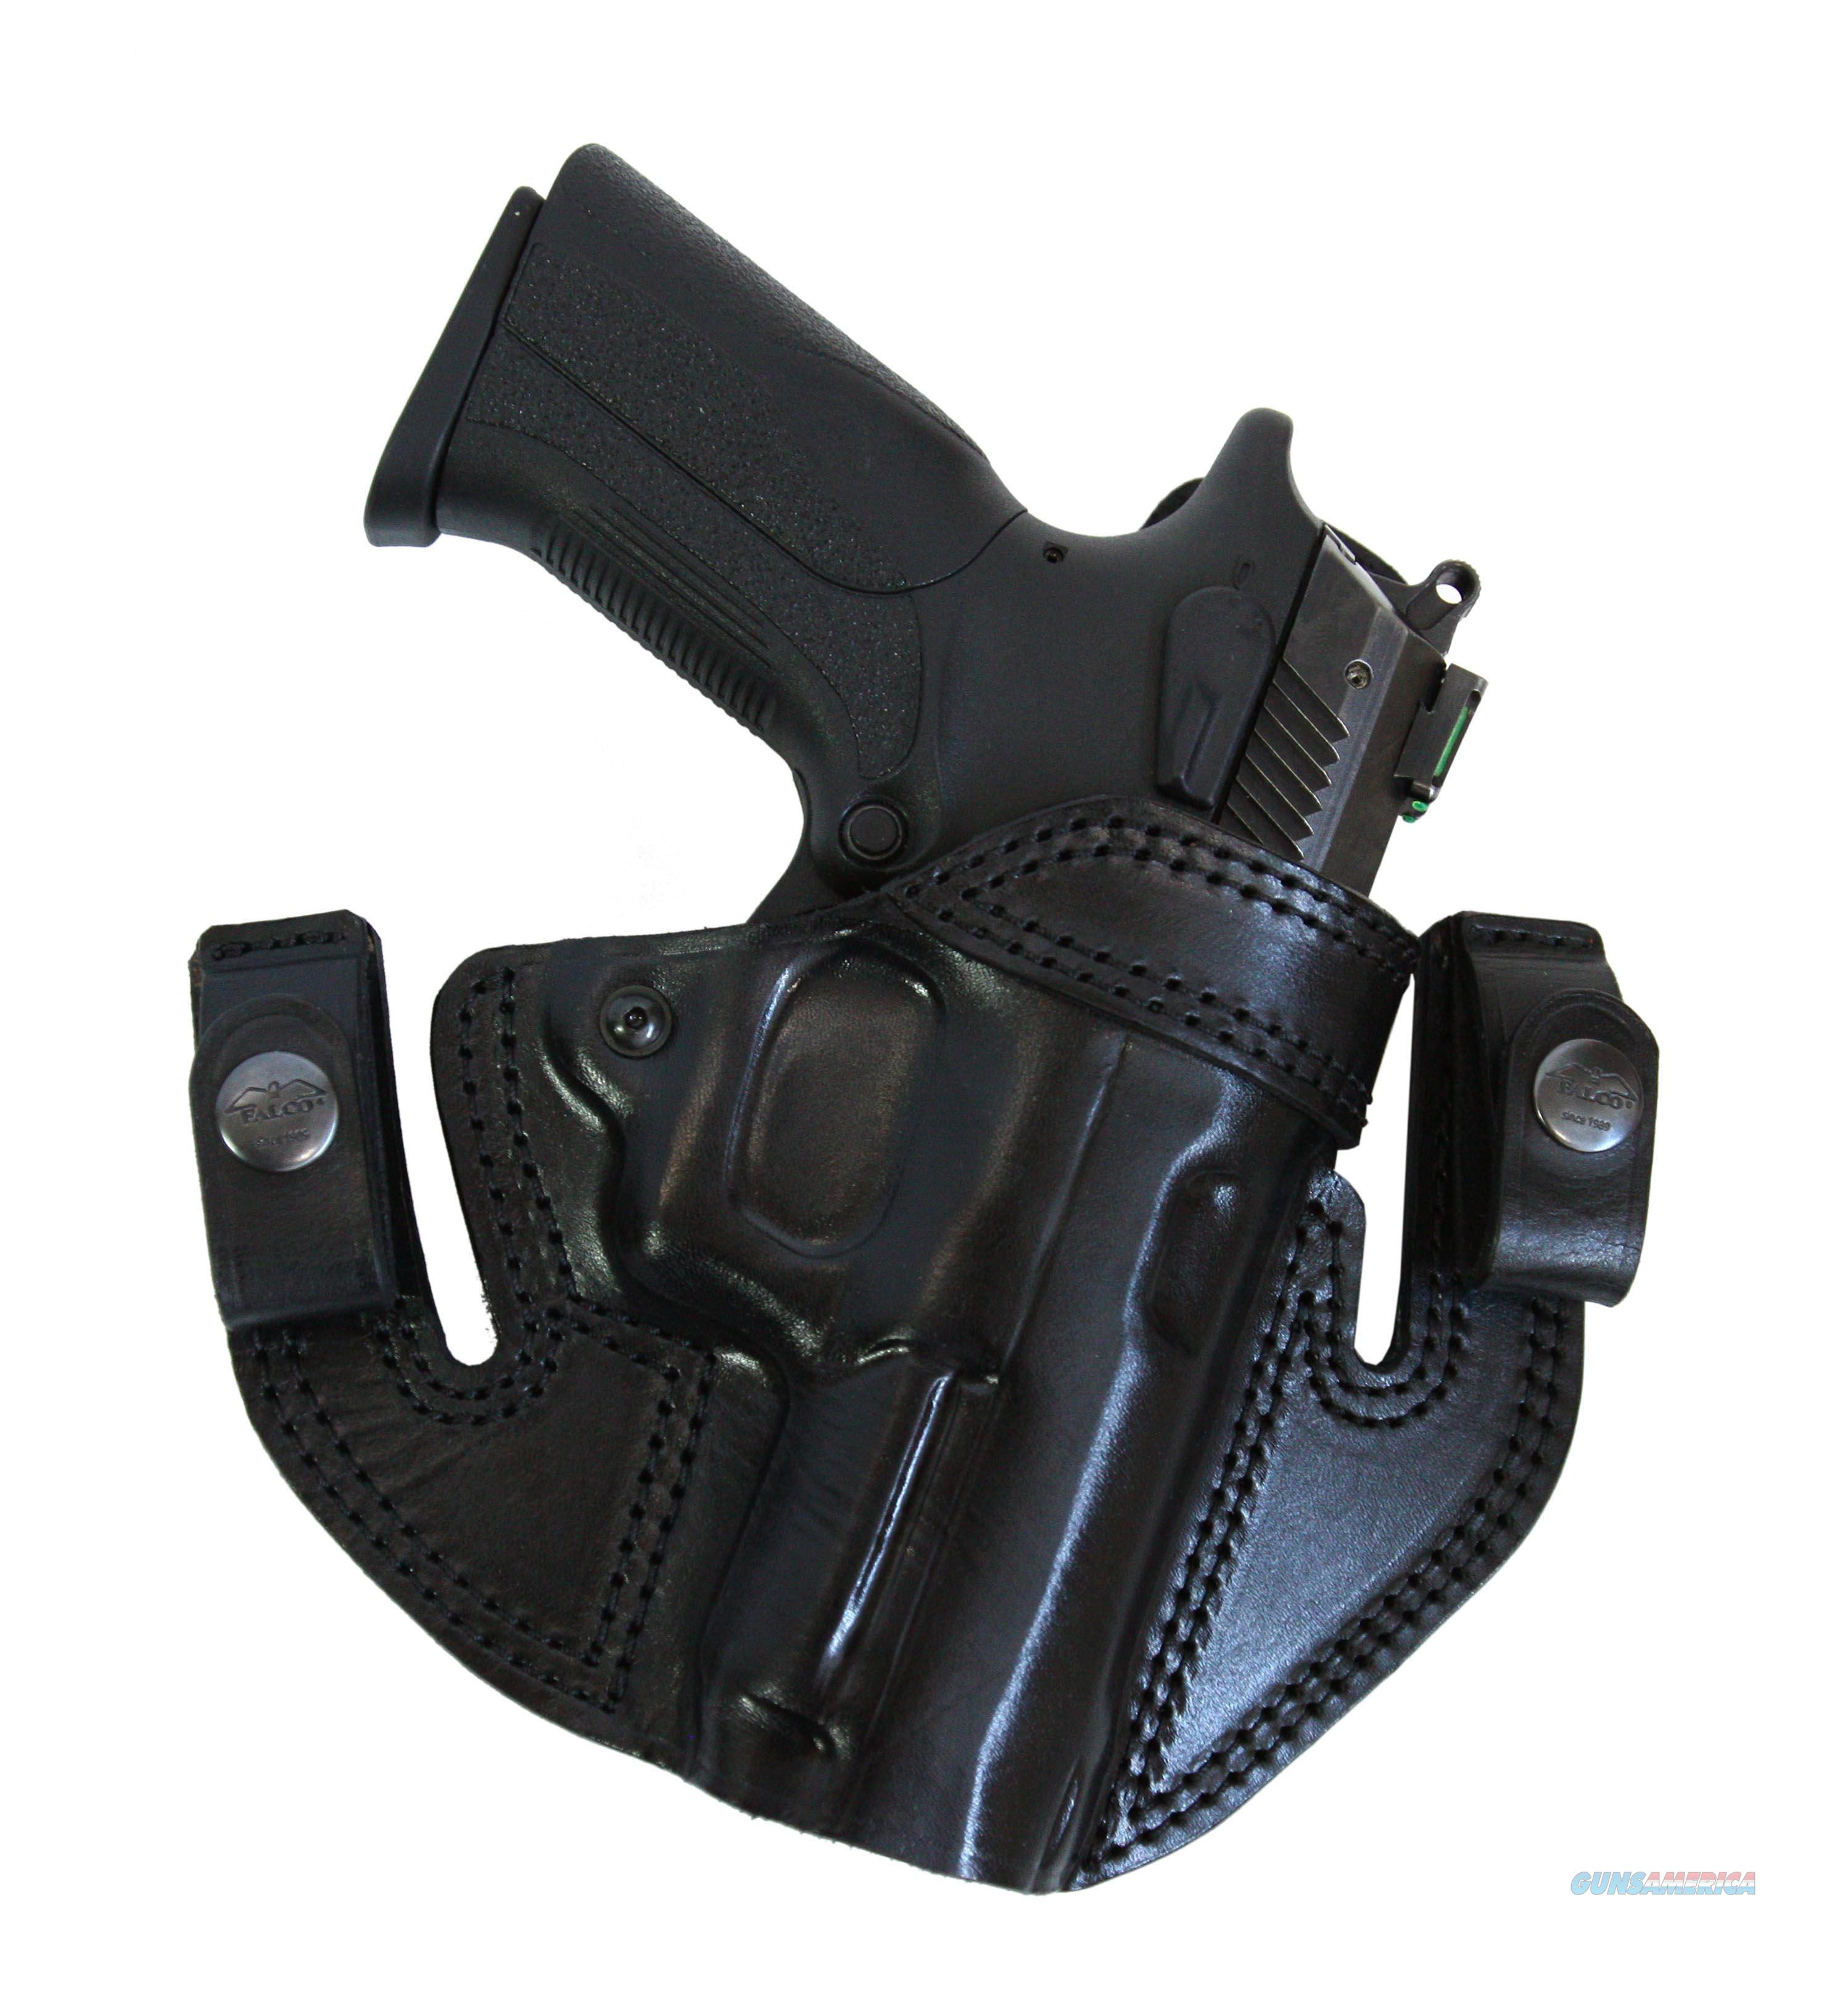 IWB / OWB Leather Gun Holster  Glock 26, 27, 28, 33, 39  Non-Guns > Holsters and Gunleather > Concealed Carry